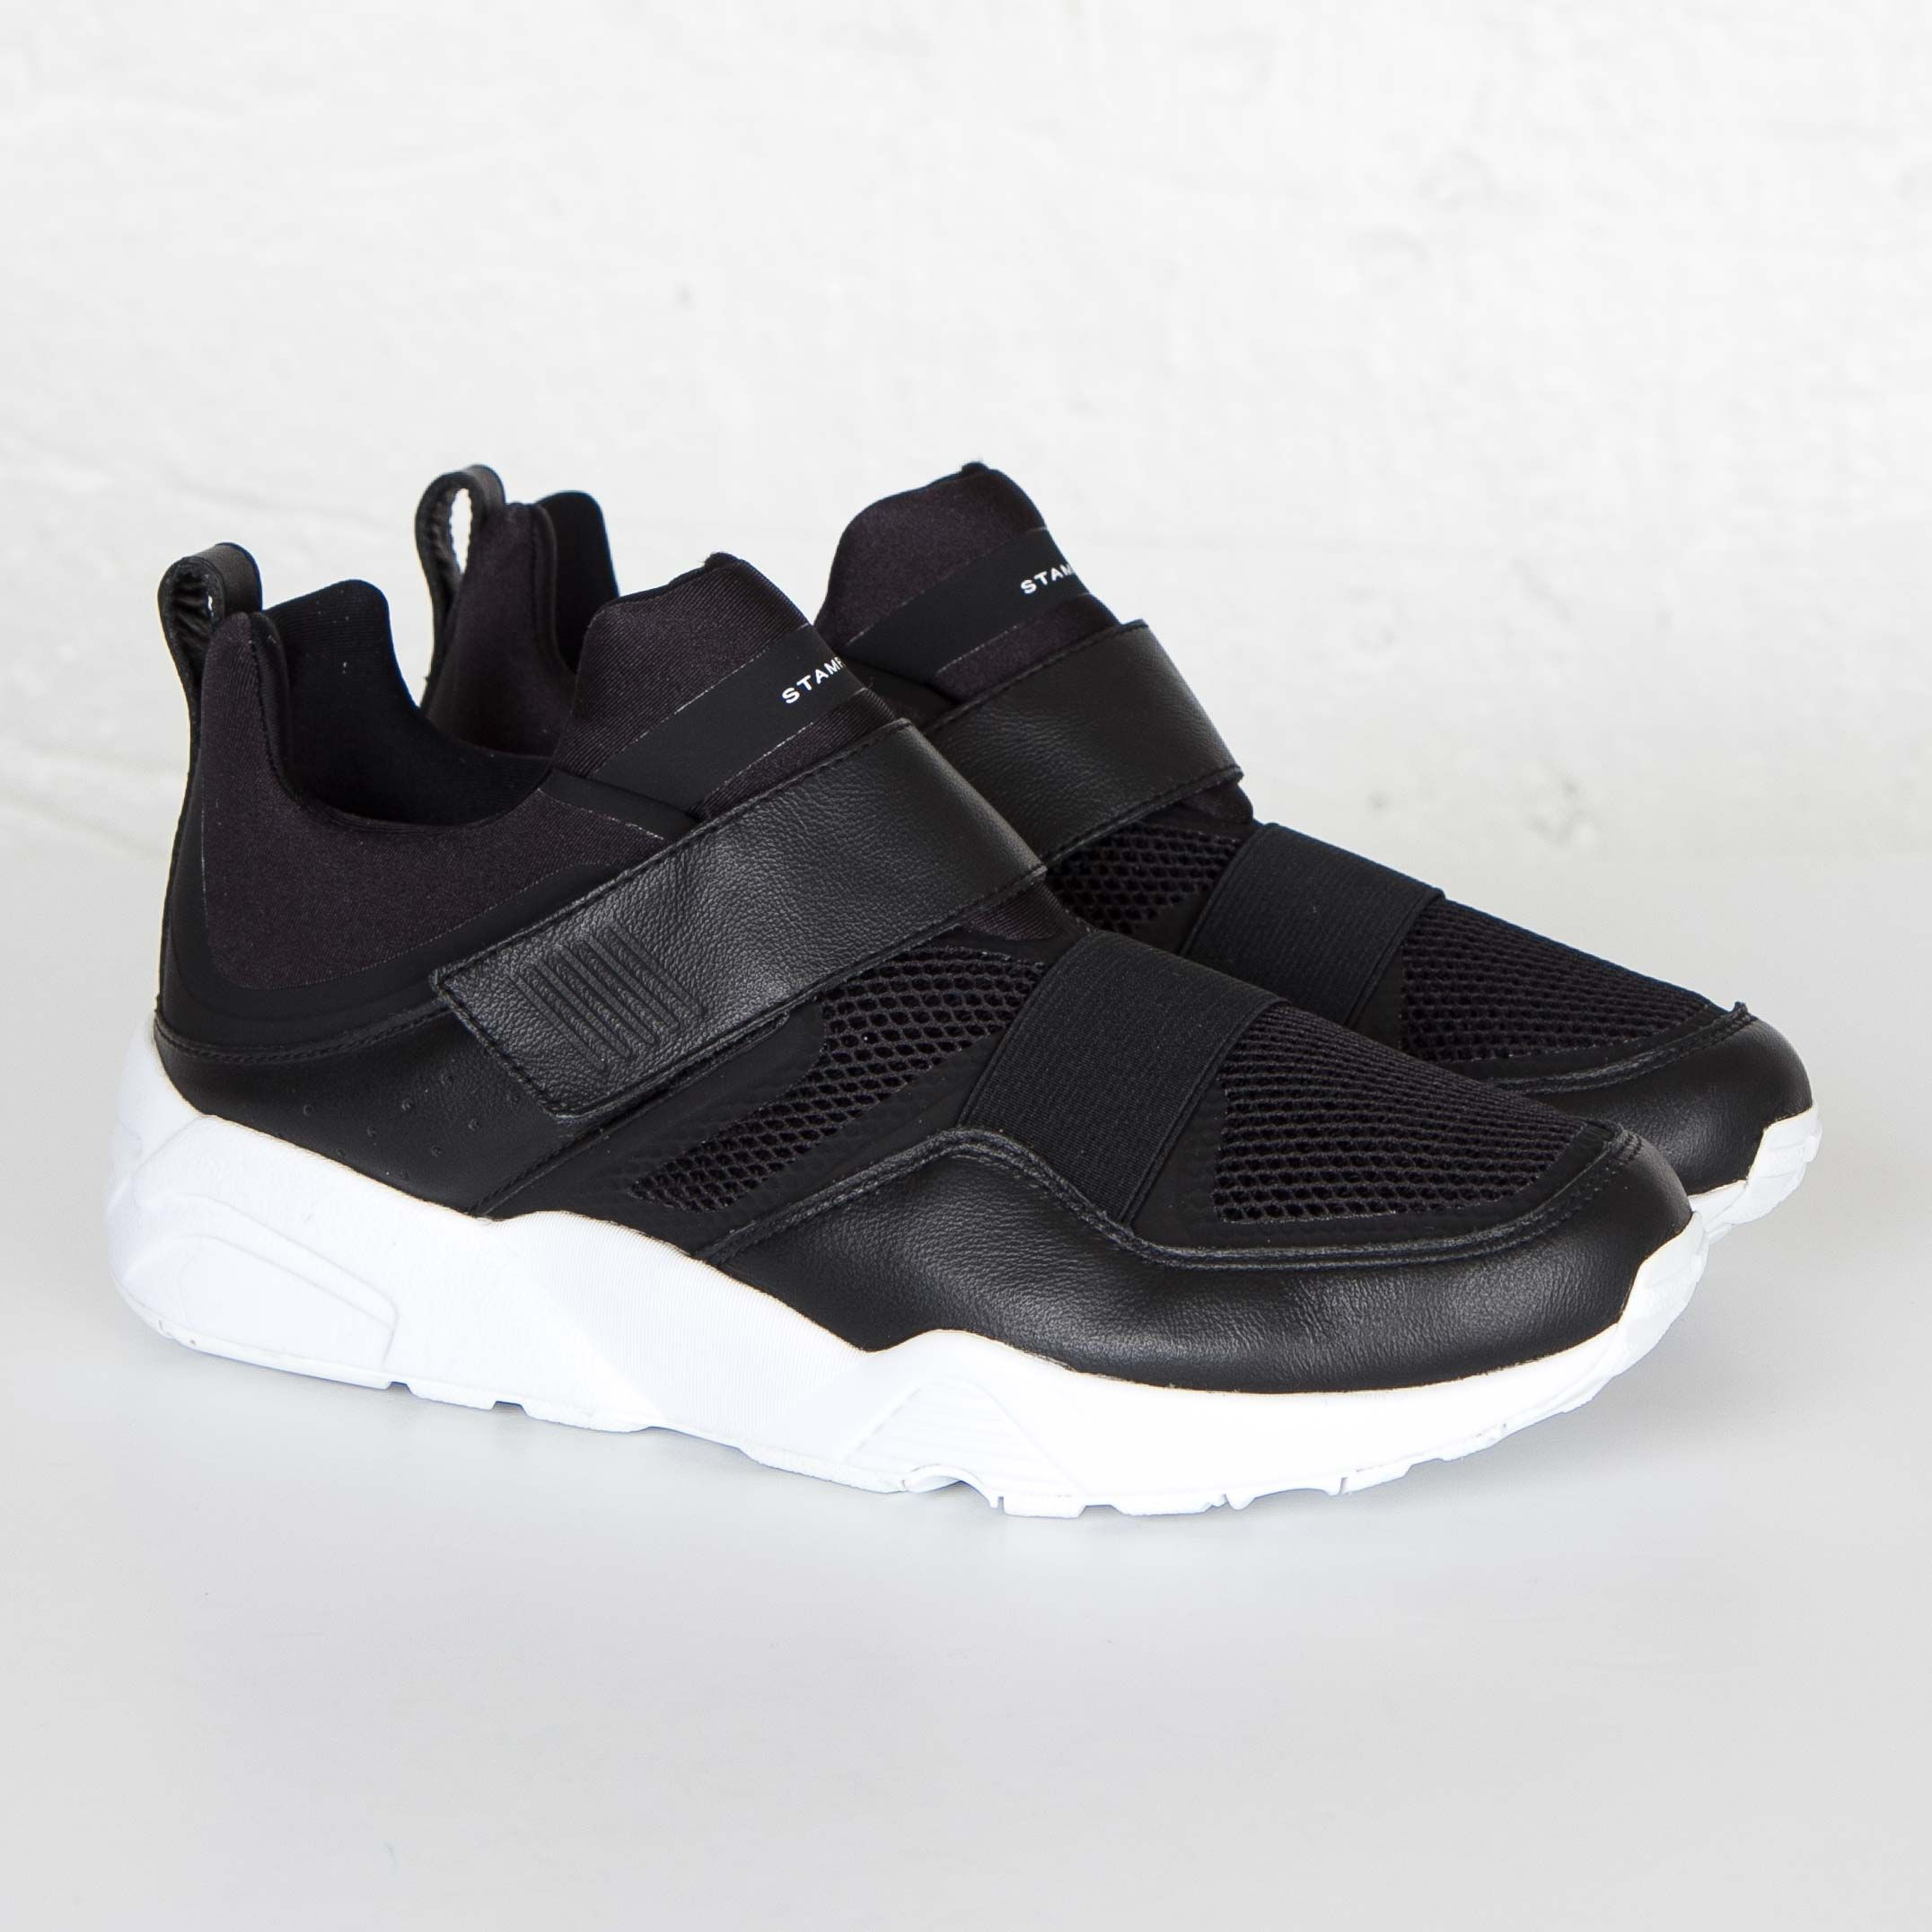 check out 9ee34 5fad6 THESE ARE MY FAVES   PUMA Blaze of Glory Strap x Stampd Streetwear Online,  Men